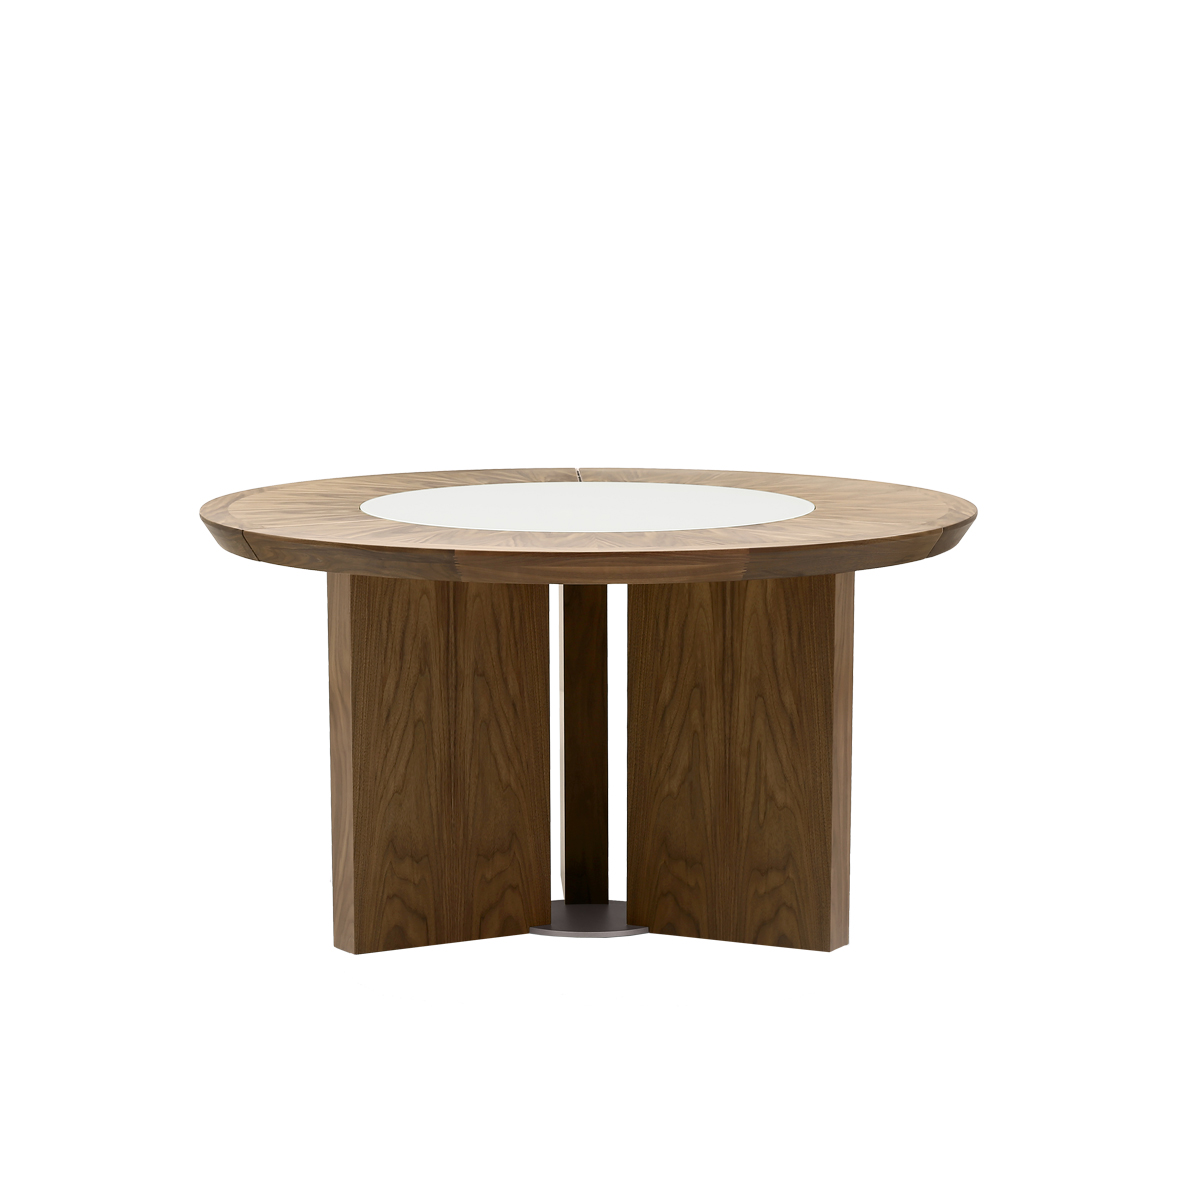 Gumtree Dining Table Images Sydney